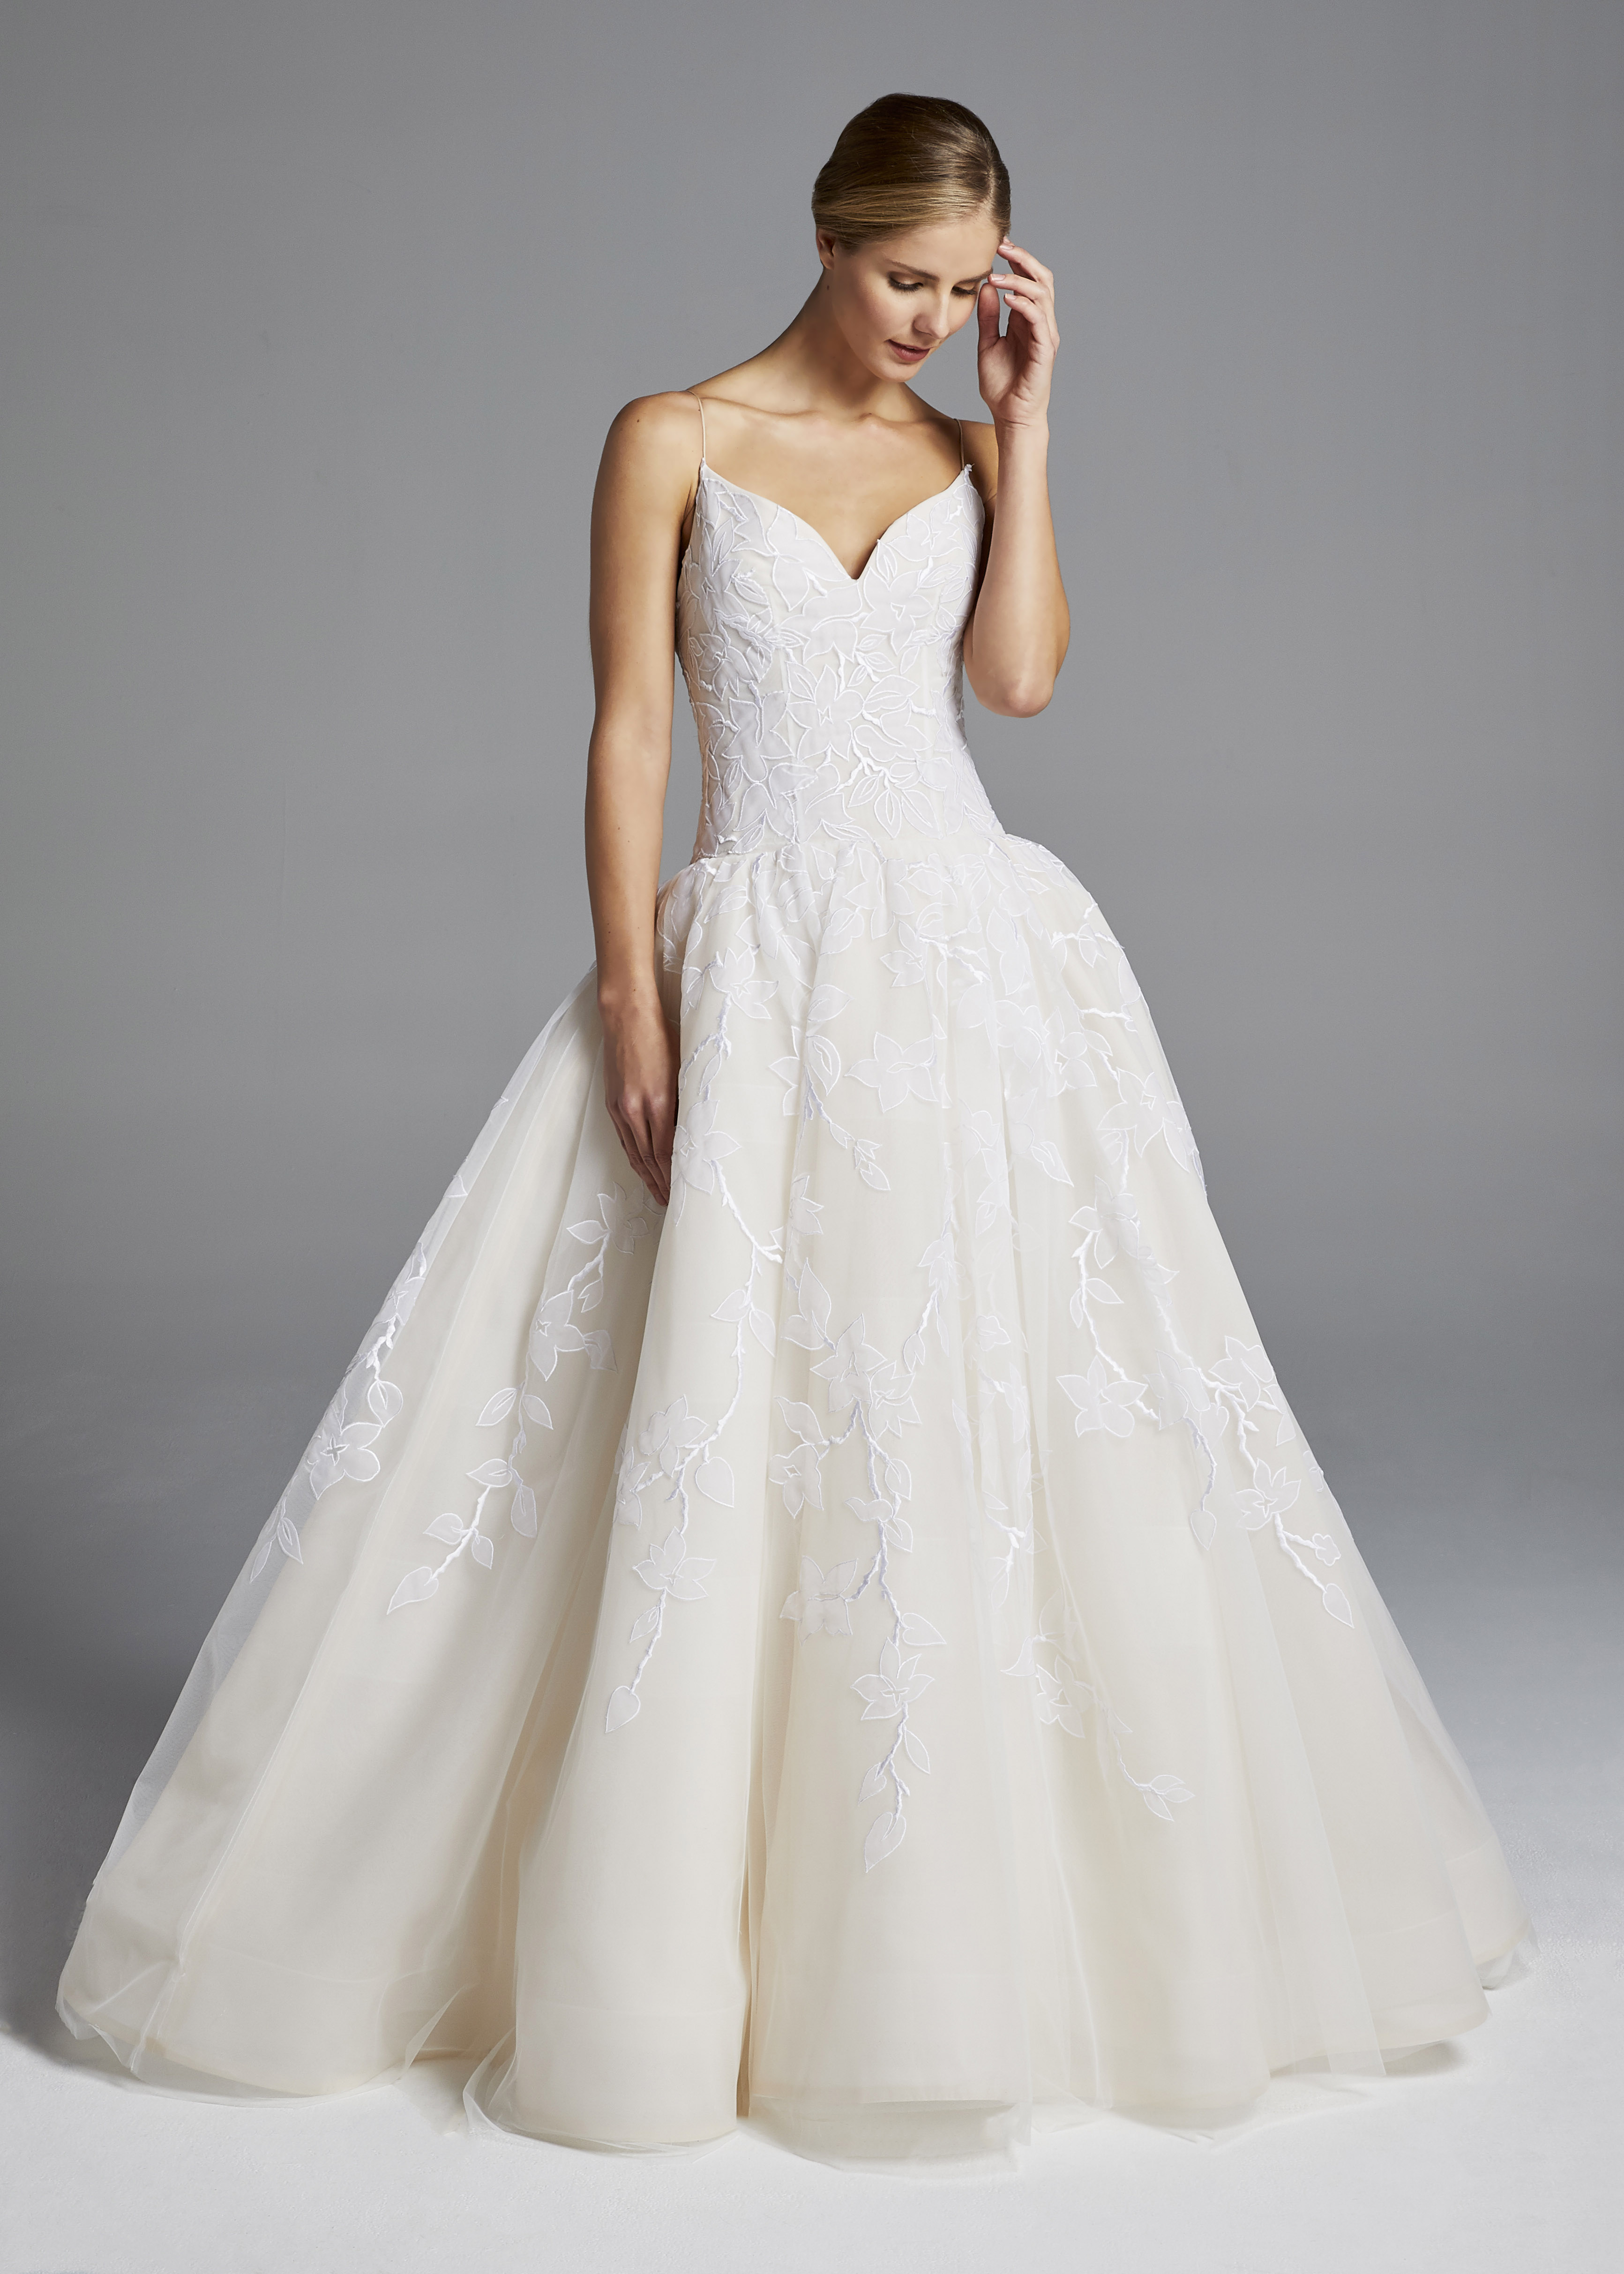 anne barge spaghetti strap ball gown wedding dress spring 2019